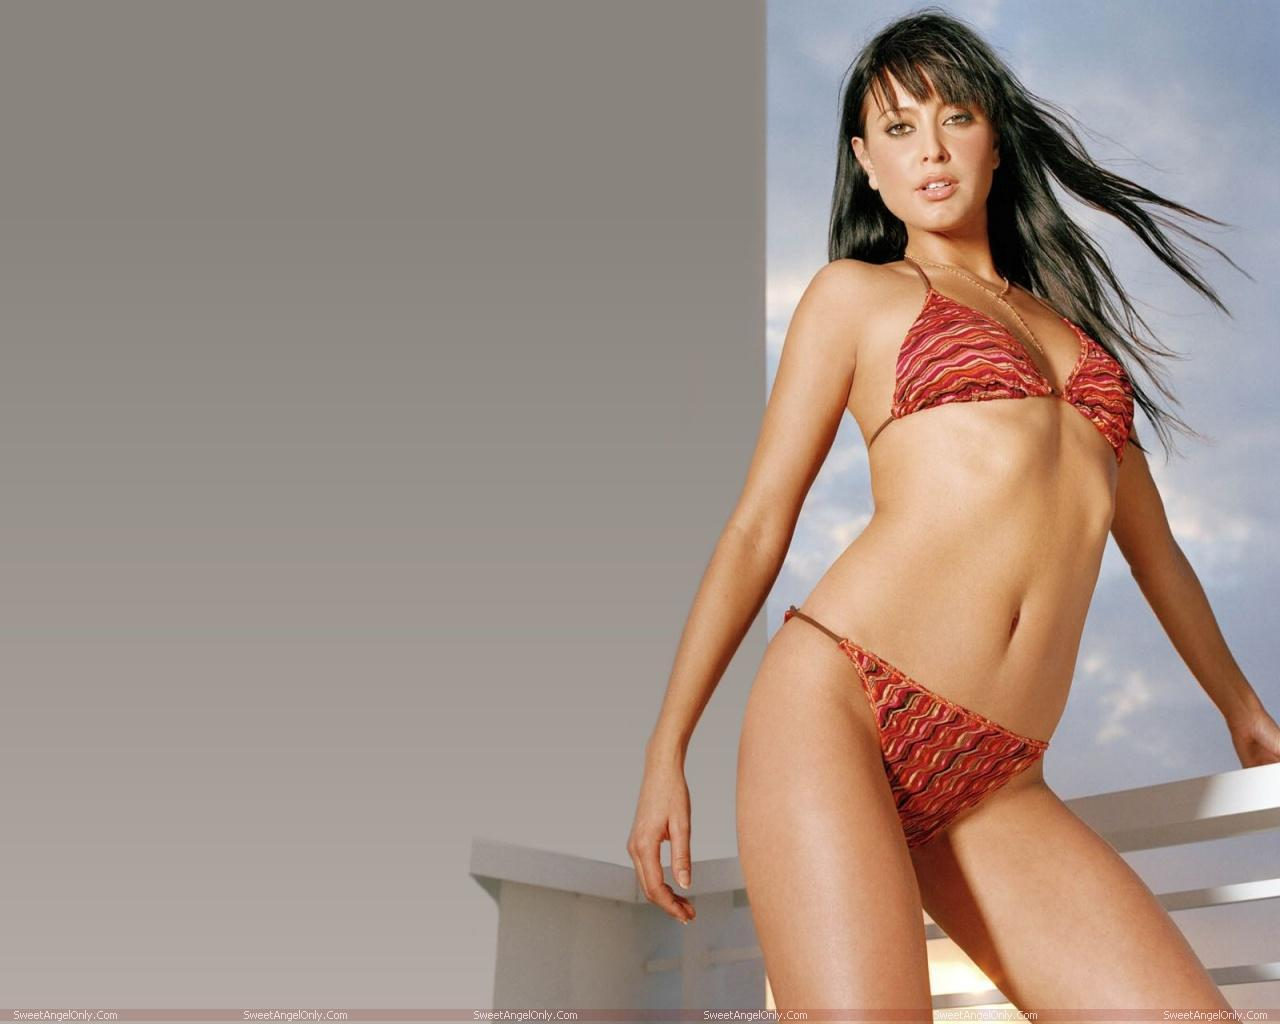 http://3.bp.blogspot.com/-c_YvWjgJ-X4/TV1NWa-SdyI/AAAAAAAAEhw/36wEmmJju_4/s1600/actress_holly_valance_hot_wallpapers_sweetangelonly_17.jpg